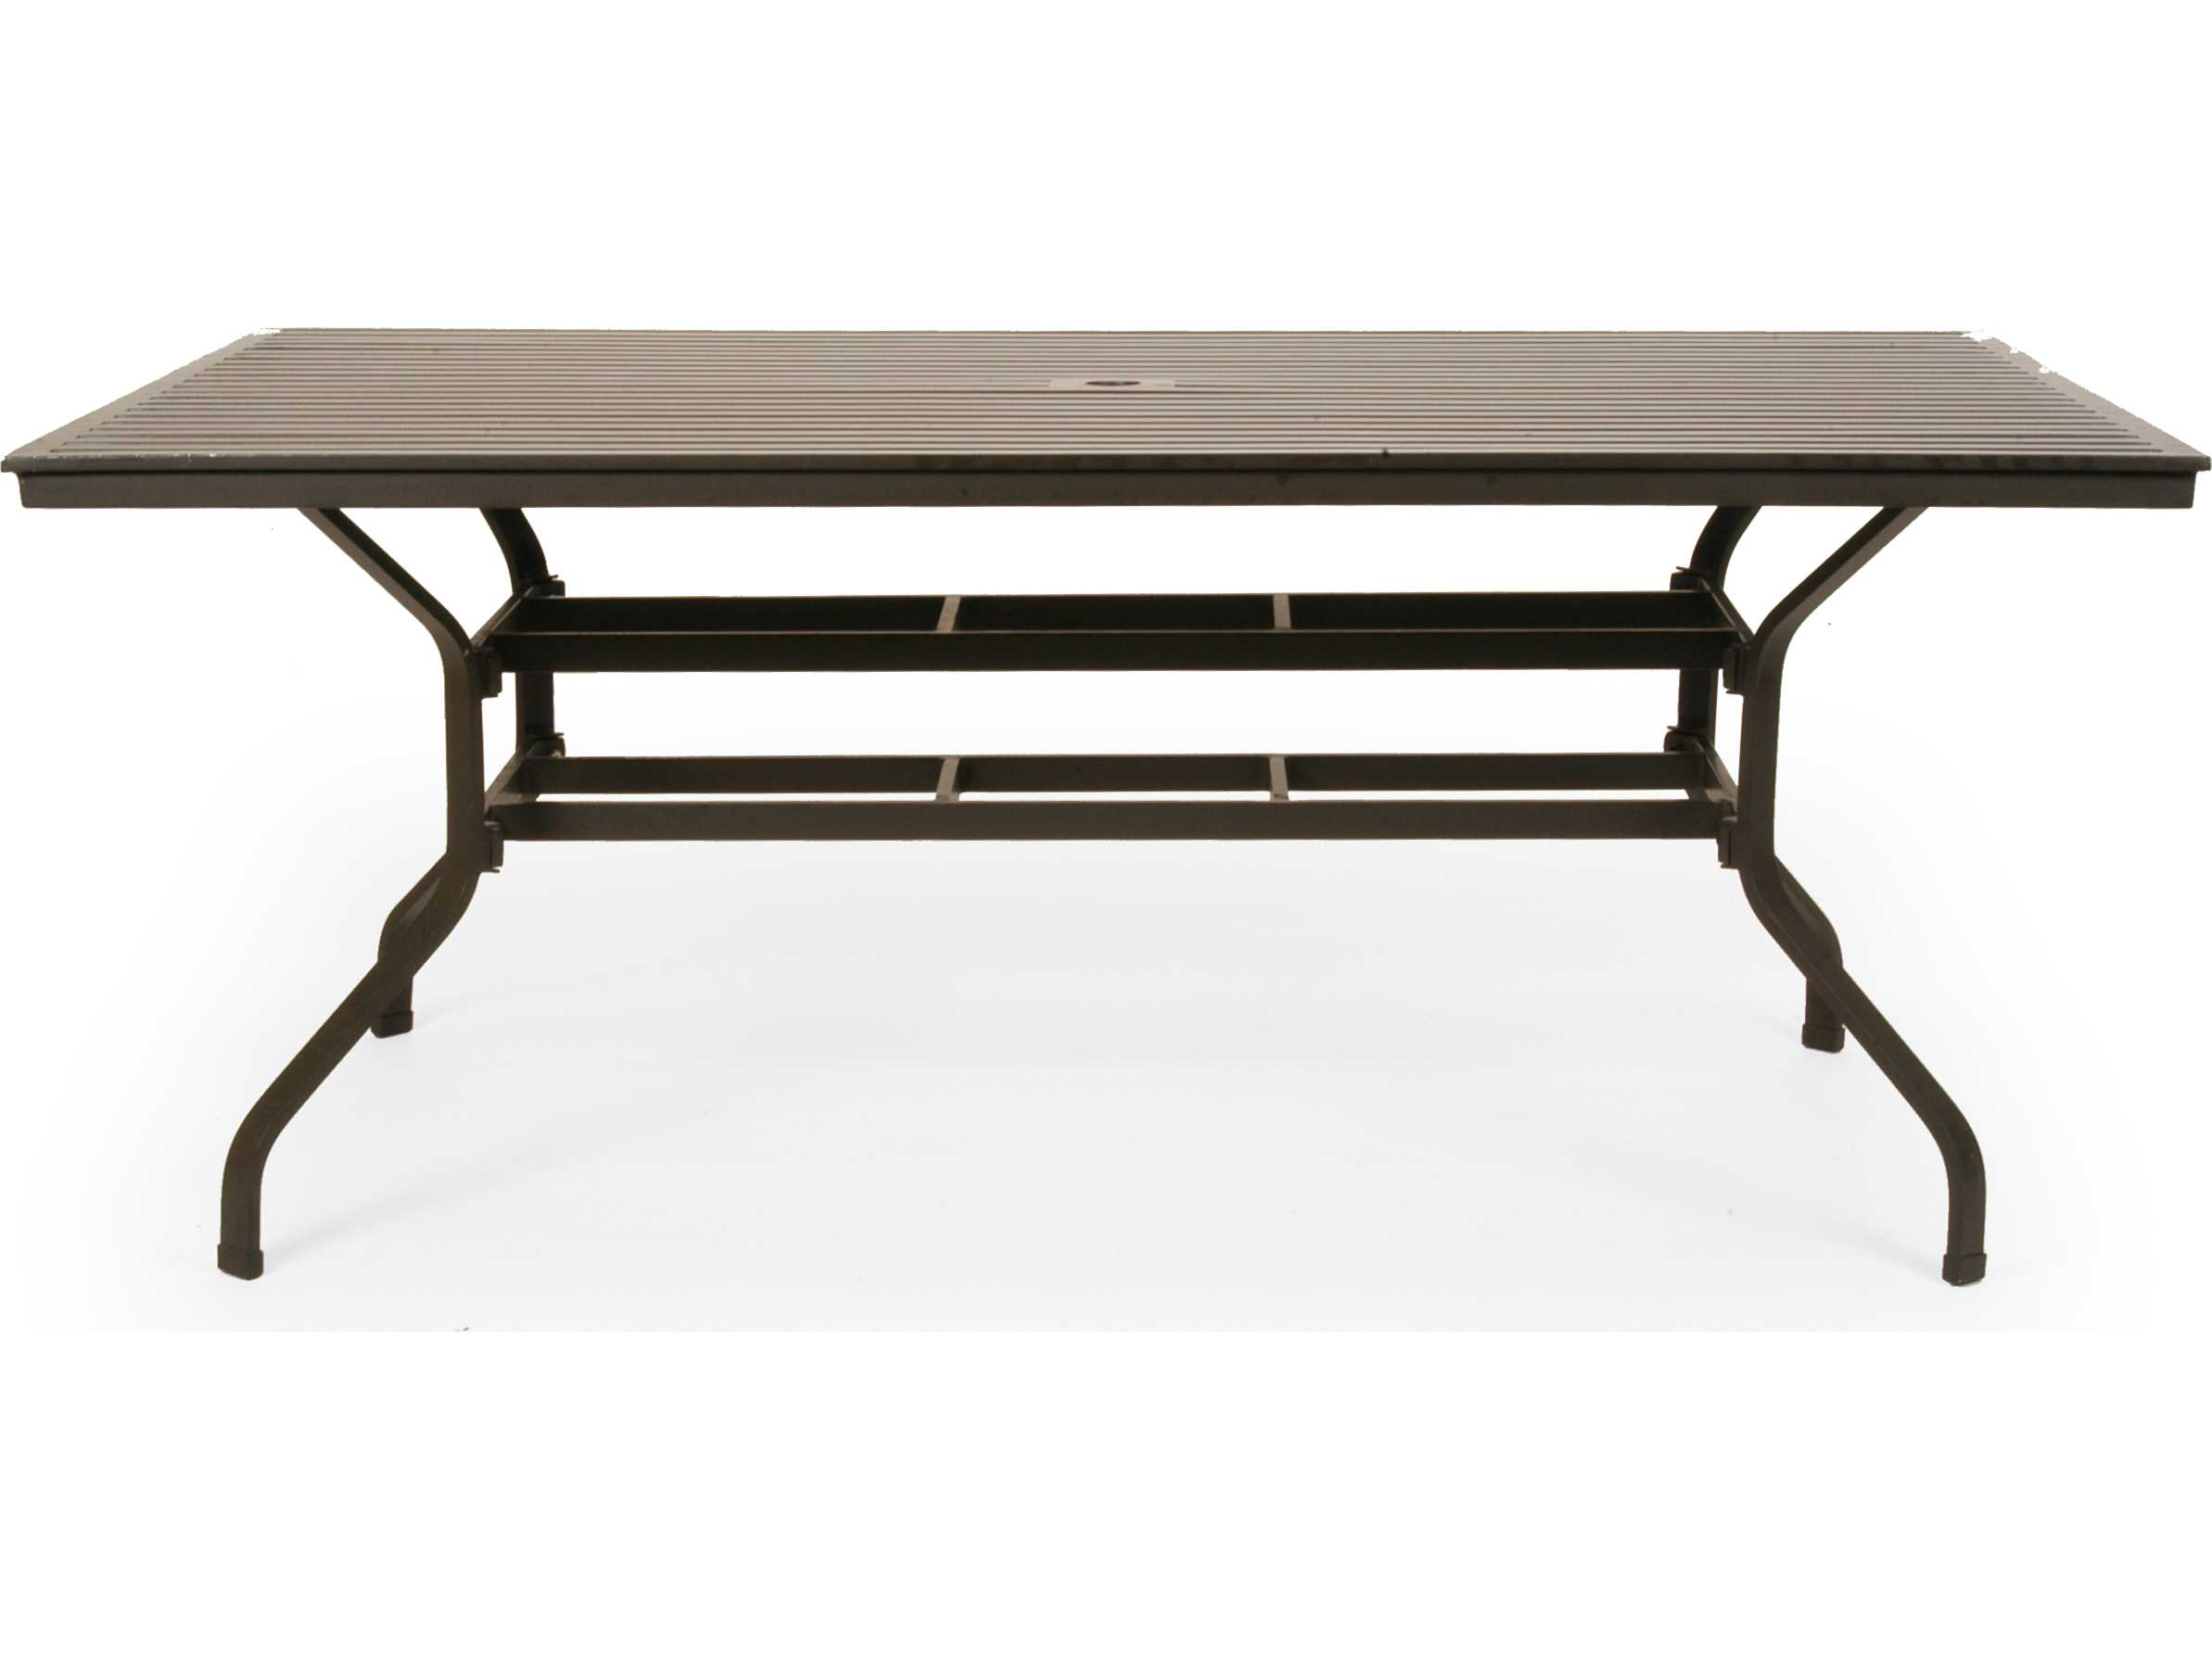 Caluco San Michele Aluminum 96 x 42 Rectangular Metal Dining Table